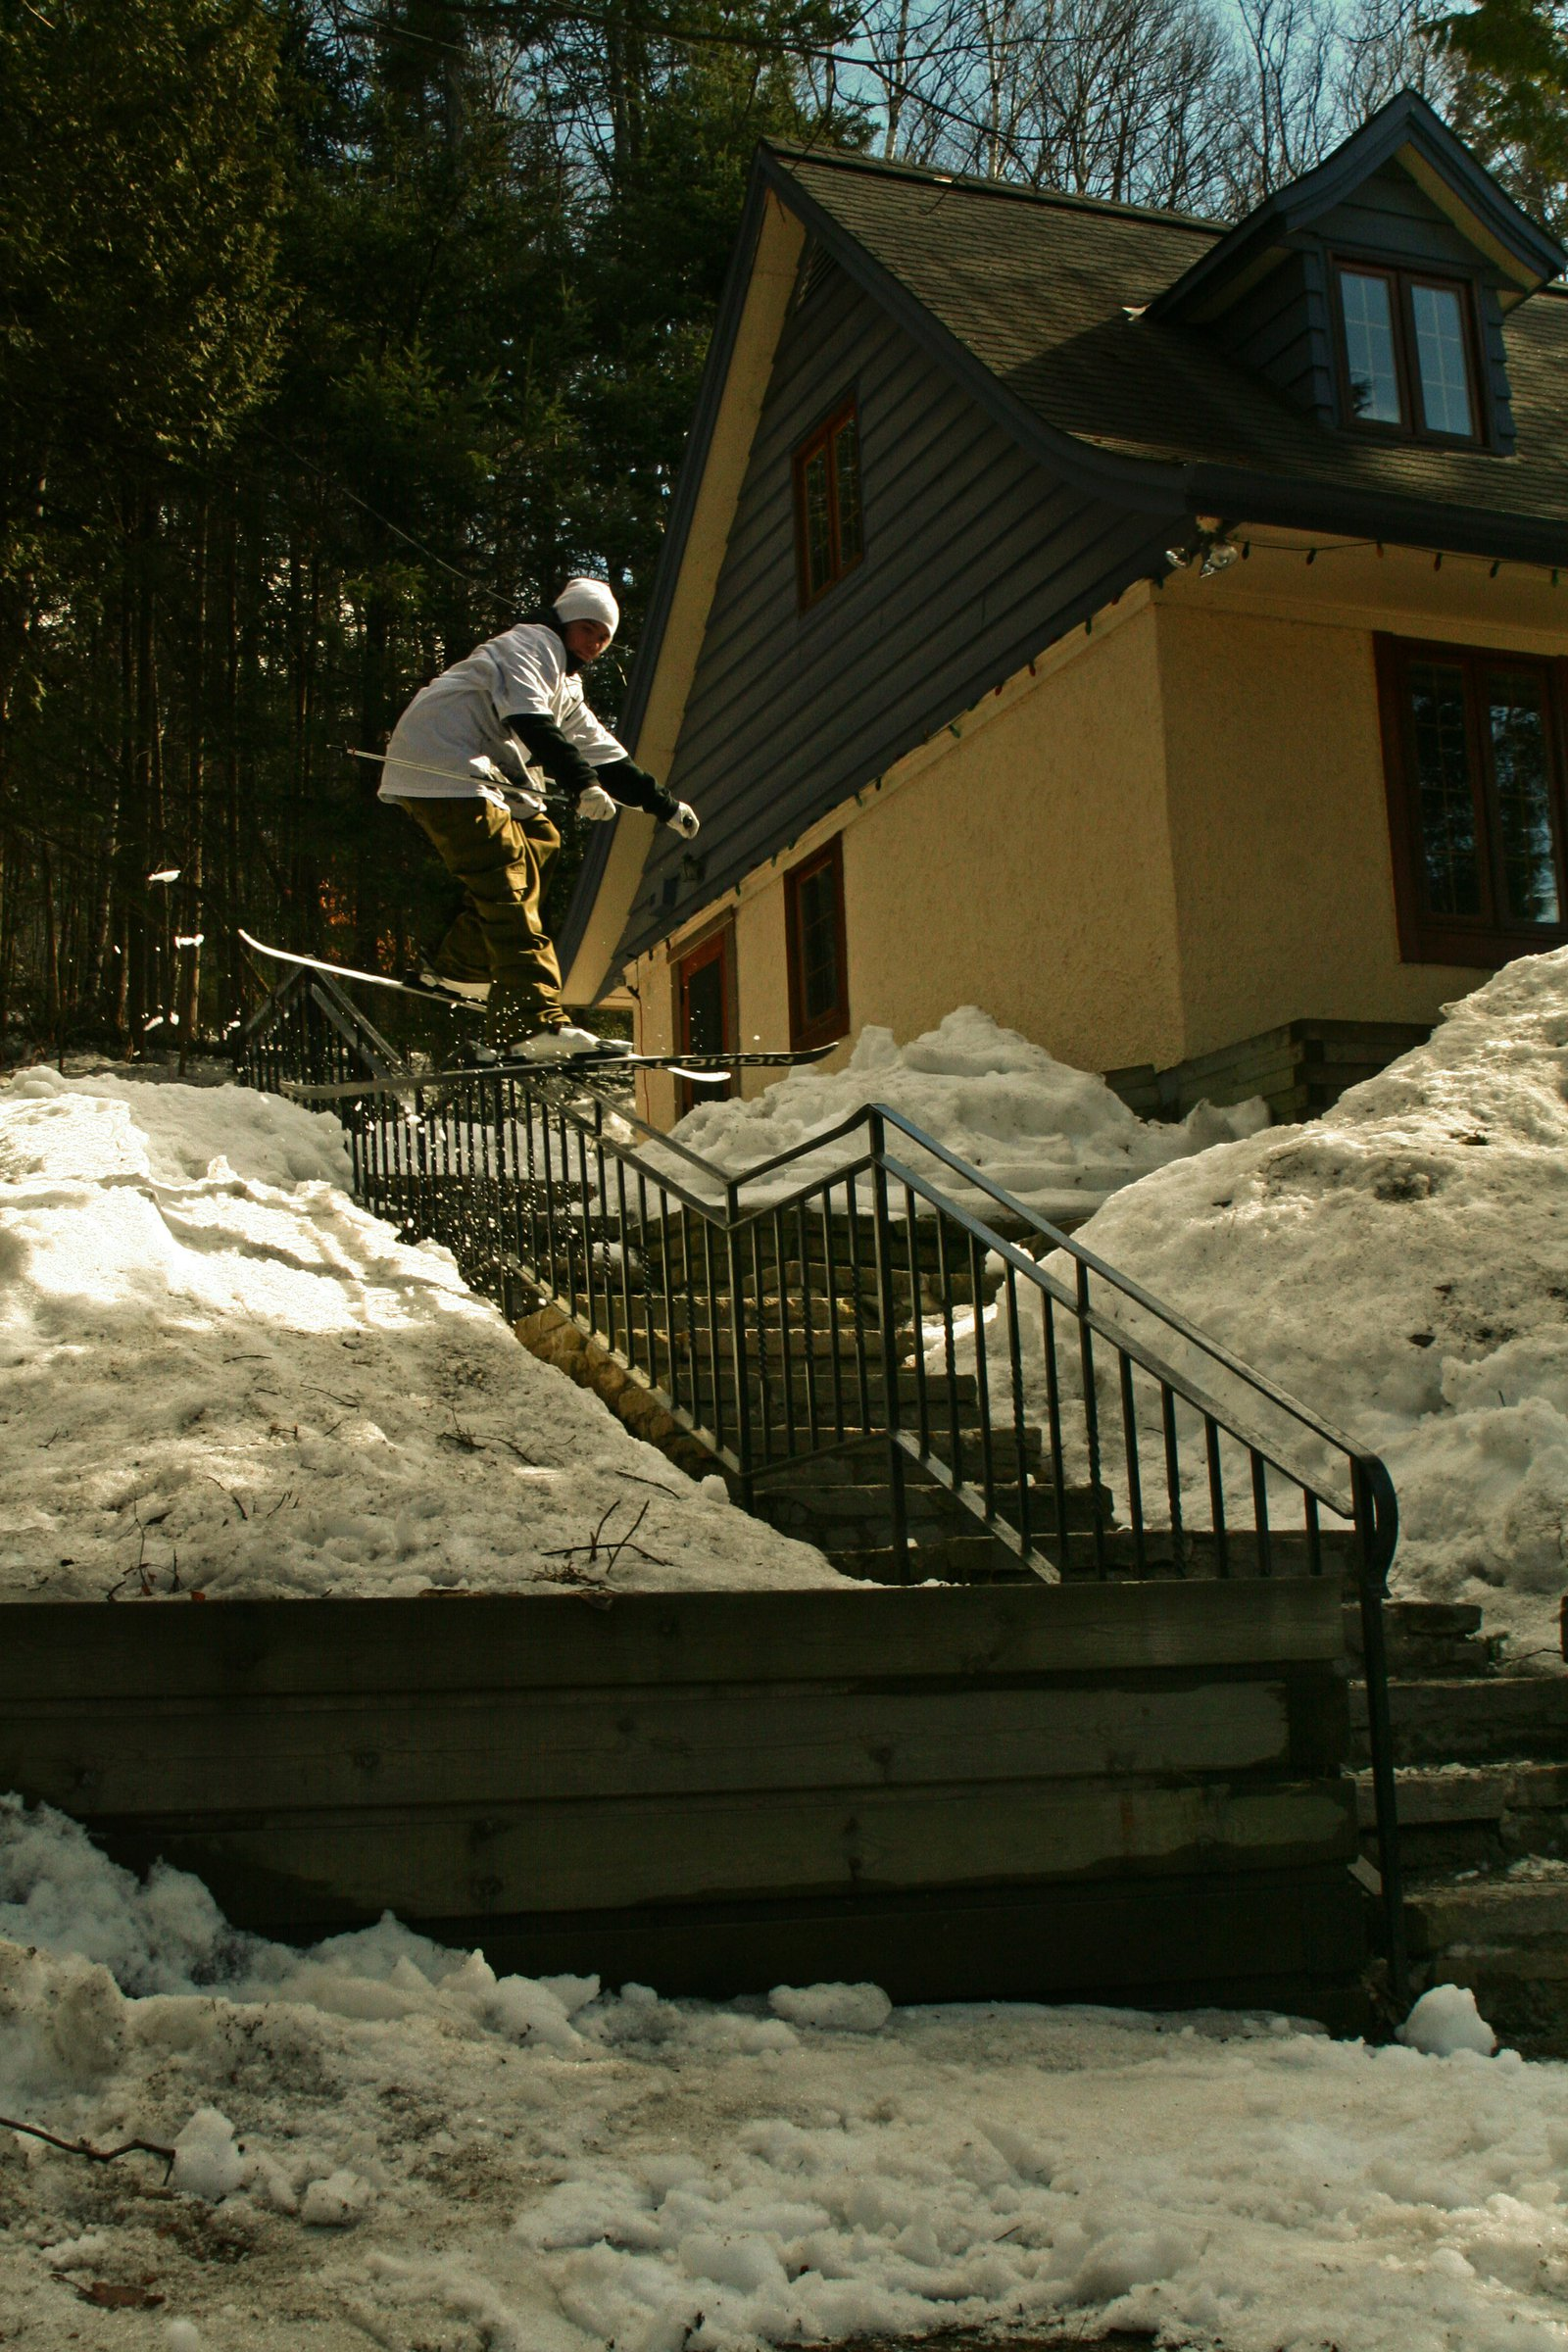 Vincent Gignac on sketchy hand rail